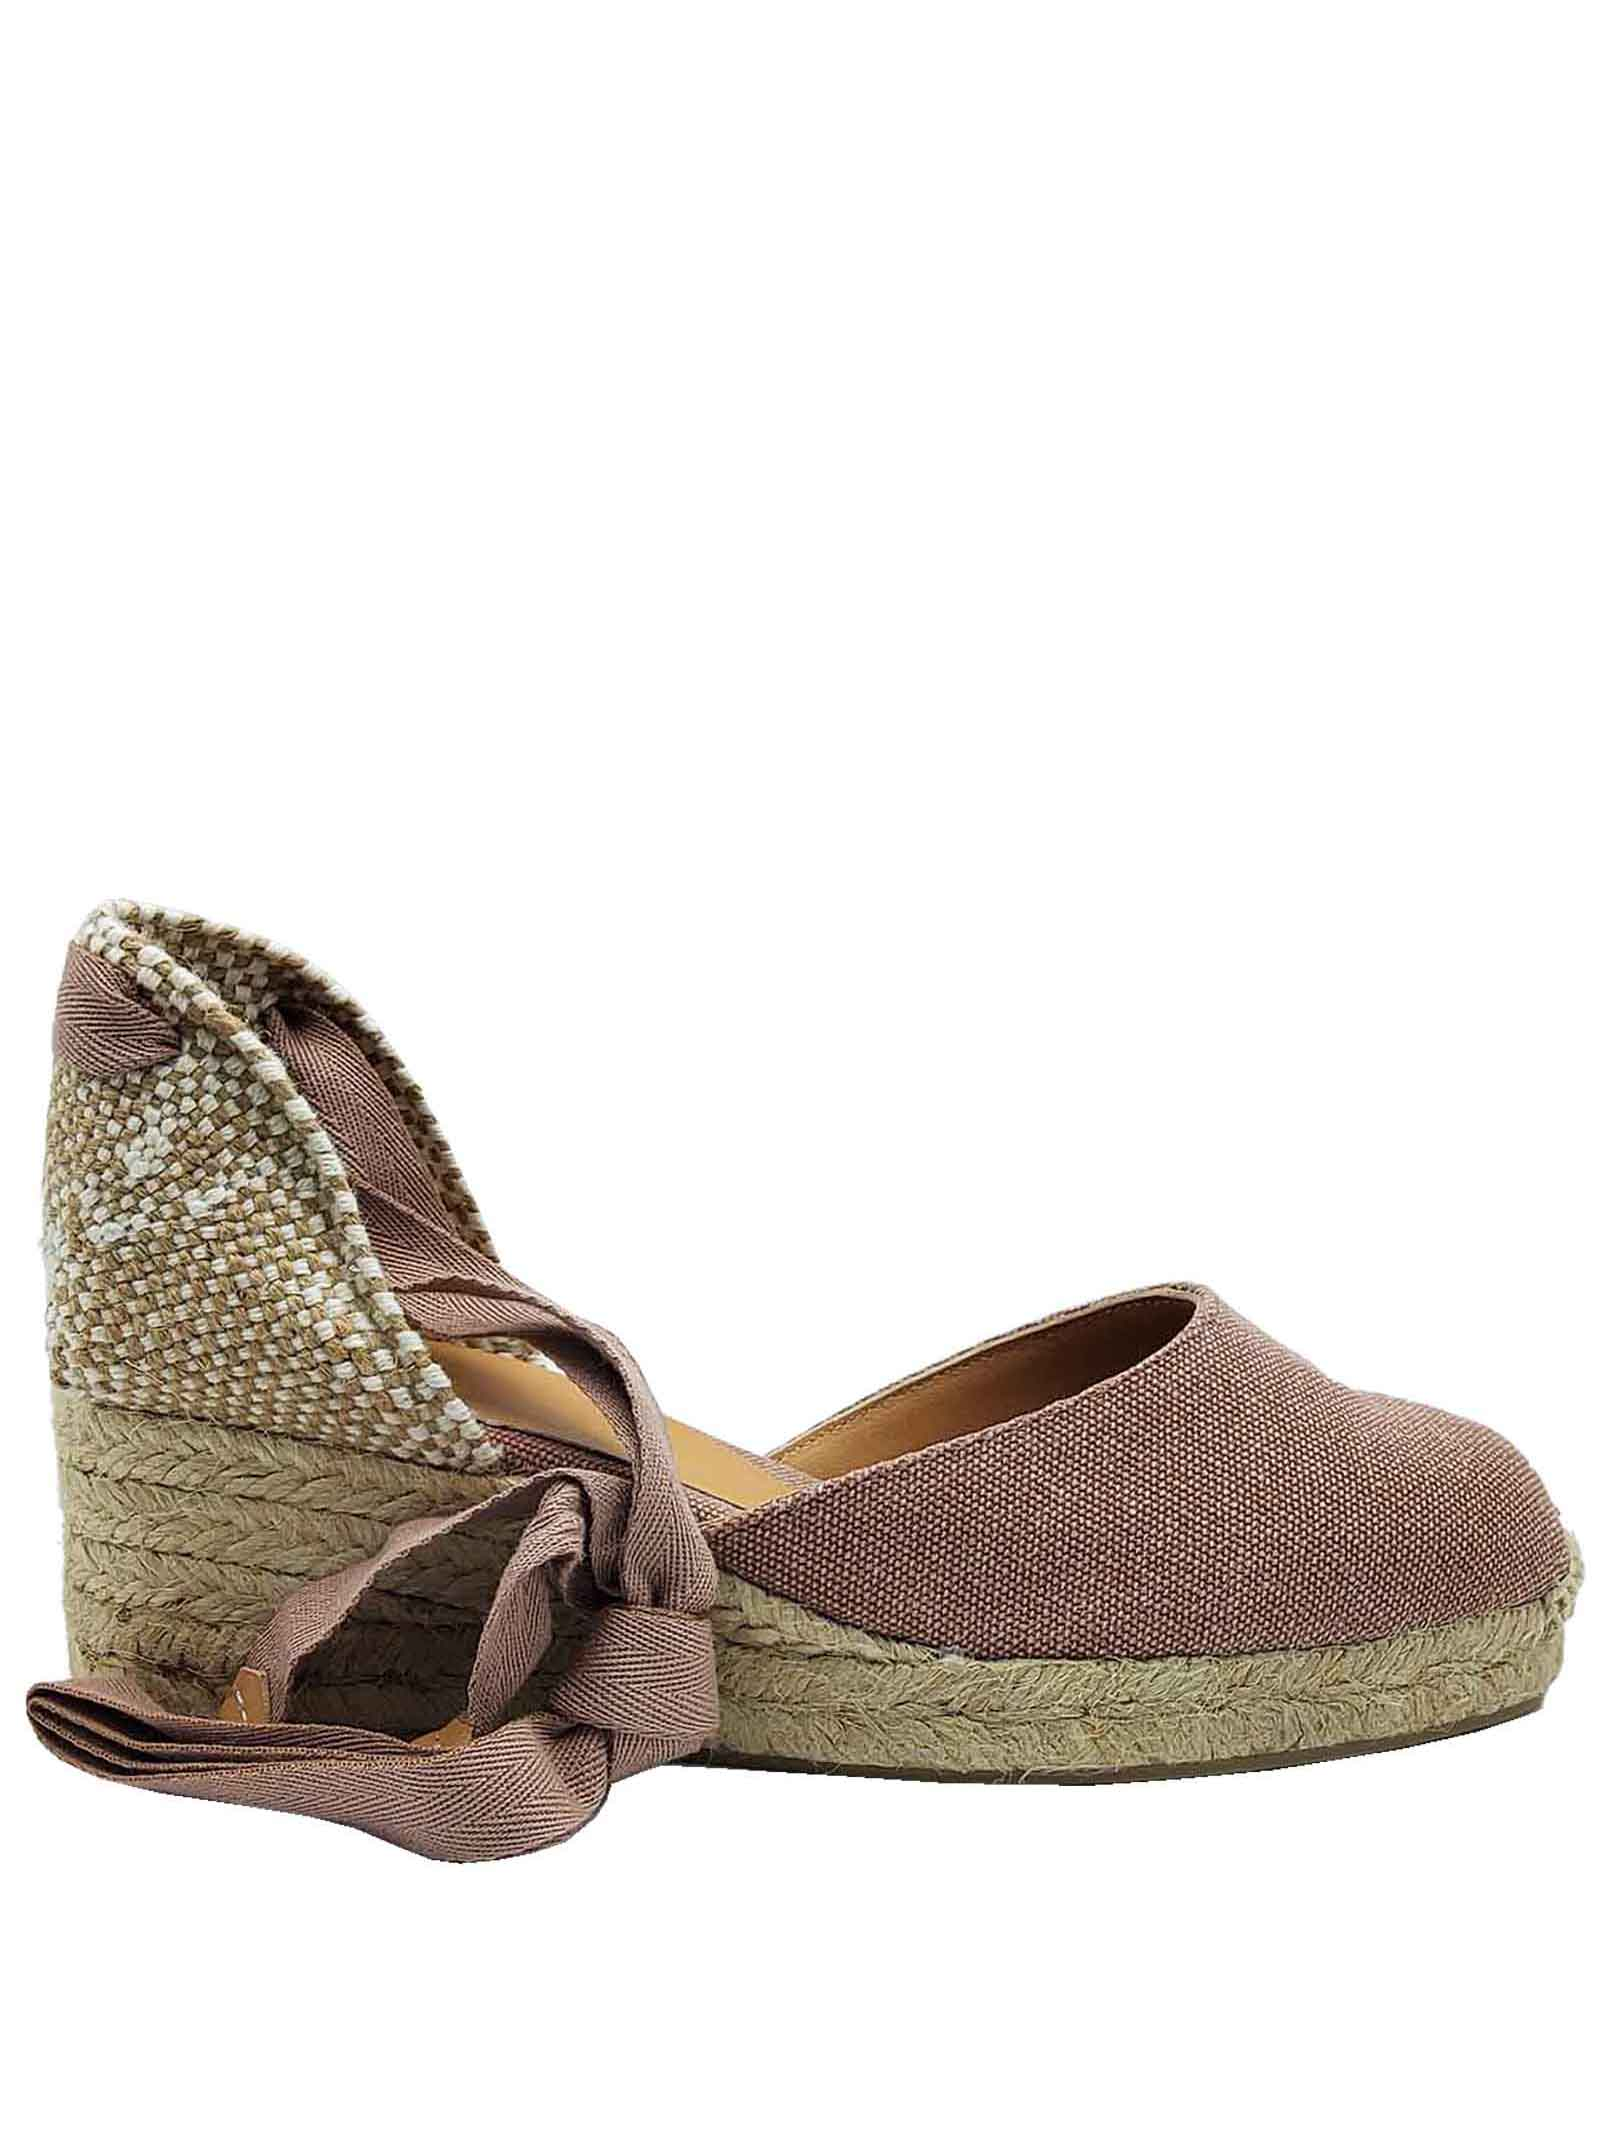 Women's Shoes Sandals Espadrilles in Pink Canvas with Closed Toe Ankle Laces and Low Rope Wedge Castaner | Wedge Sandals | CARINA300